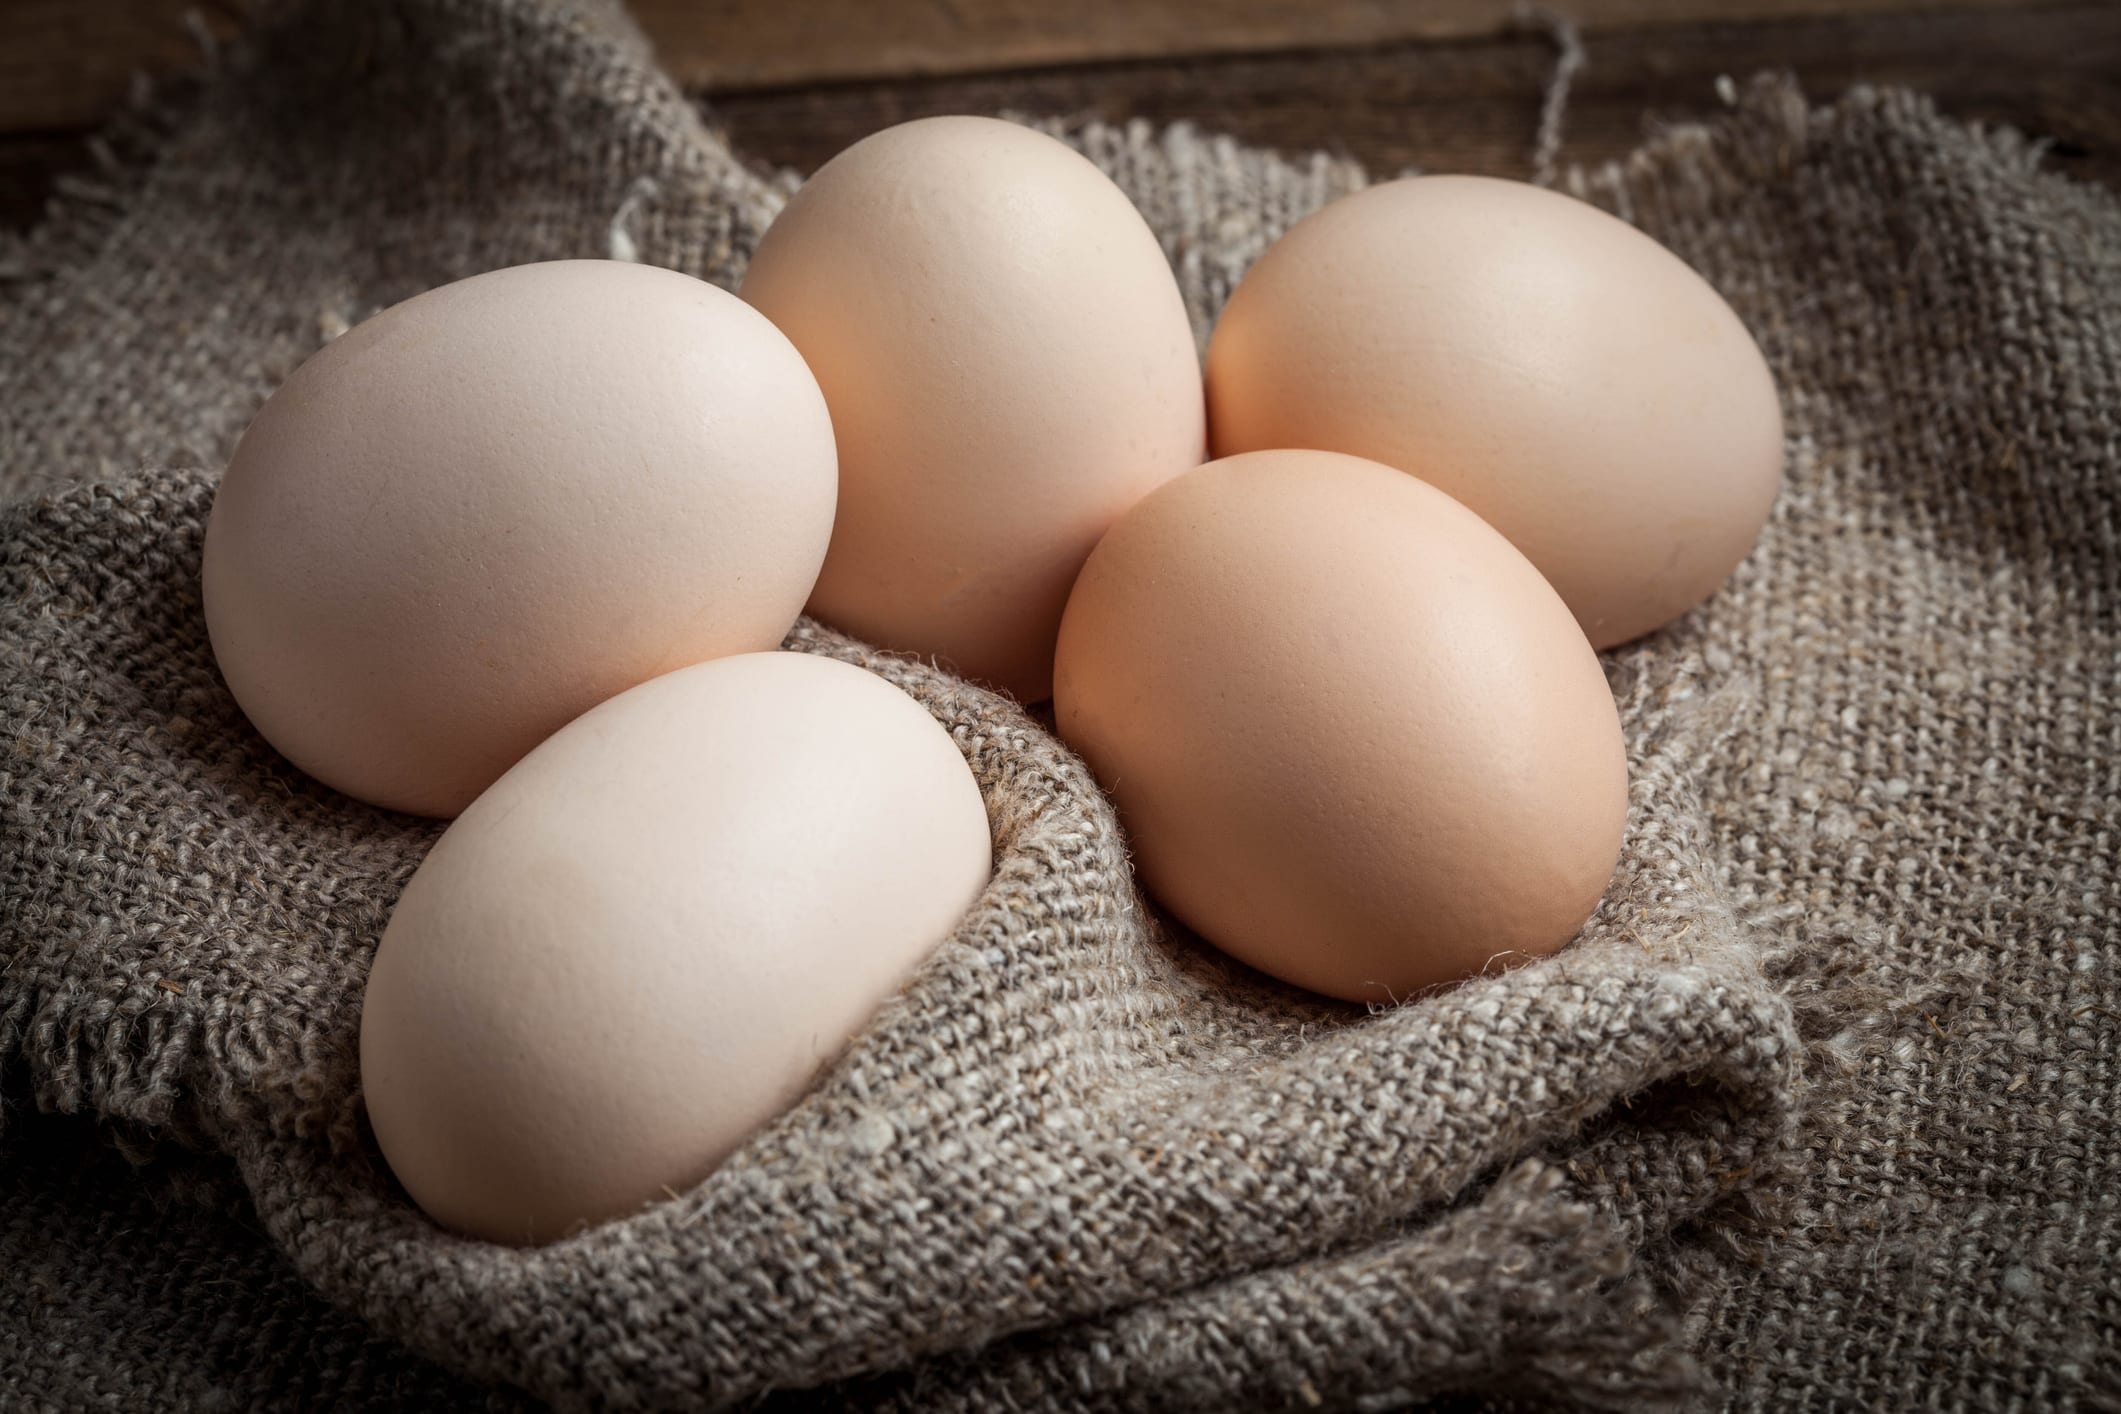 The Nutritional Value of Egg Whites Versus Egg Yolks: What Do You Use? | A Healthier Michigan